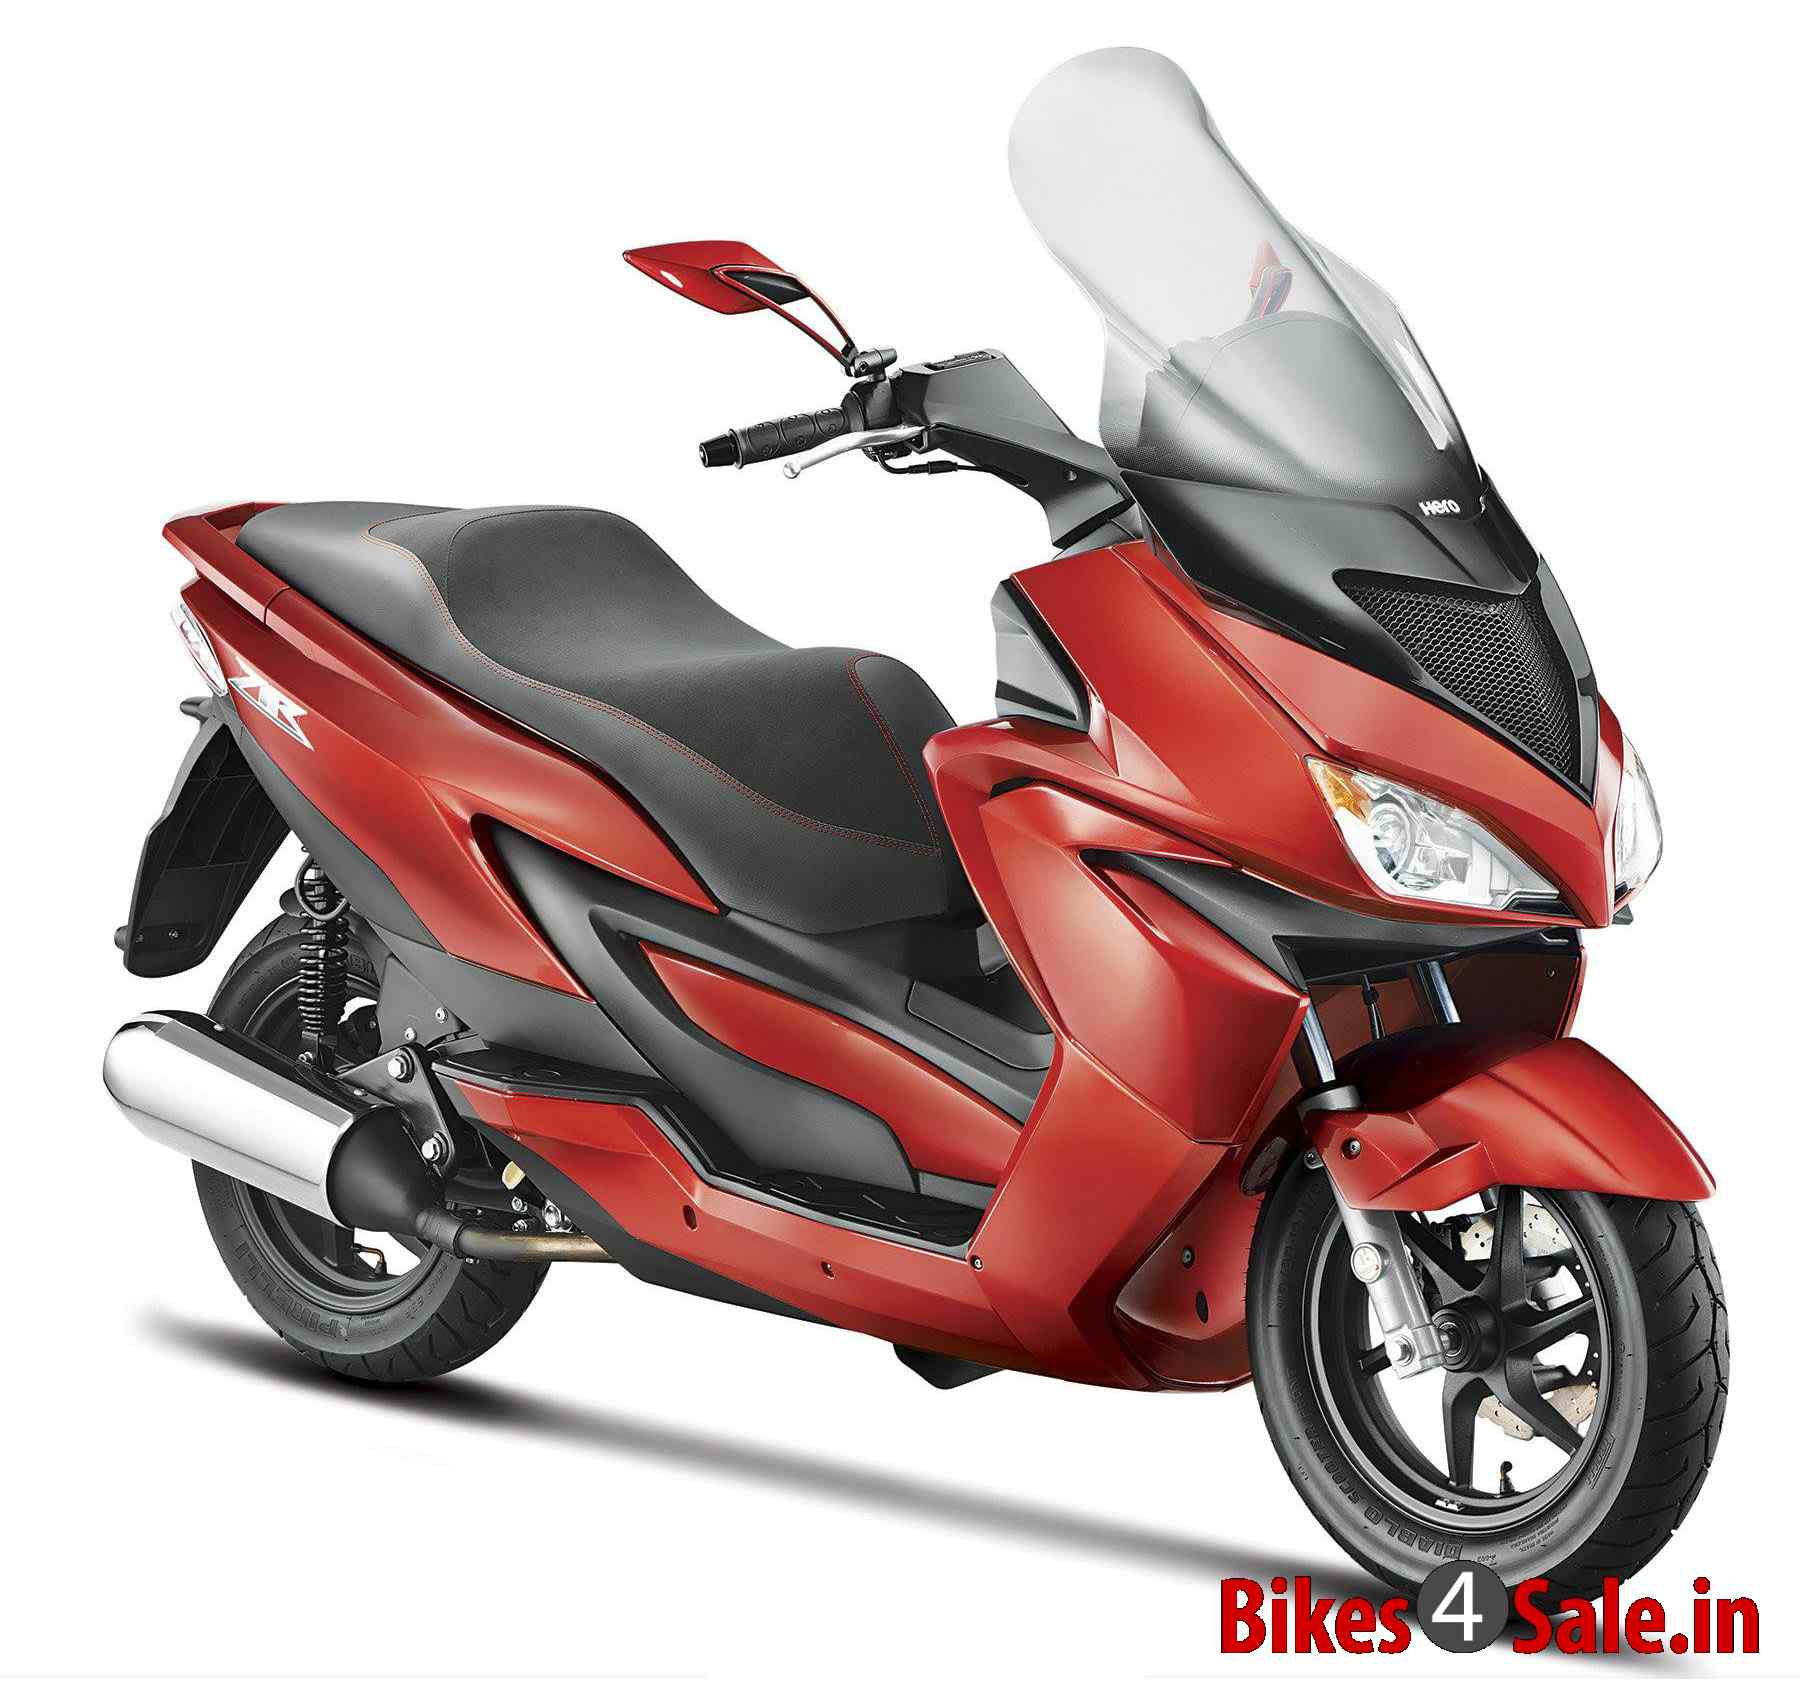 Hero ZIR 150 Scooter Picture Gallery. Red Color. European step-thru